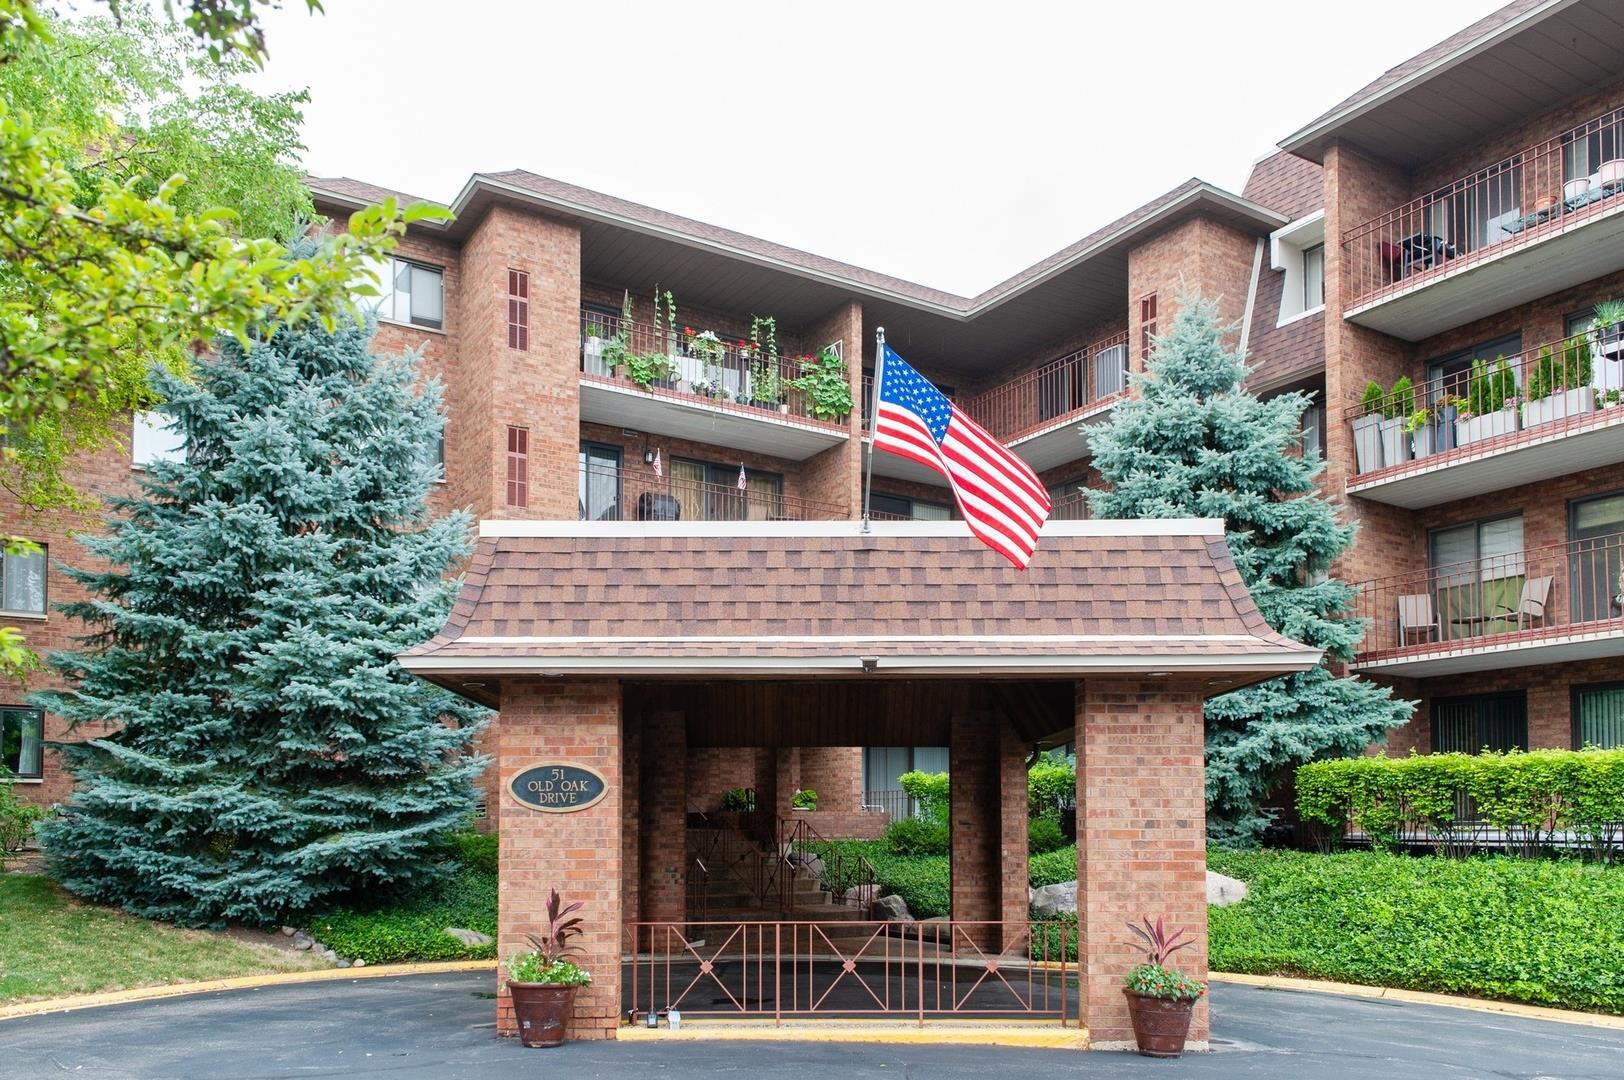 51 Old Oak Drive #108, Buffalo Grove, IL 60089 - #: 10786113